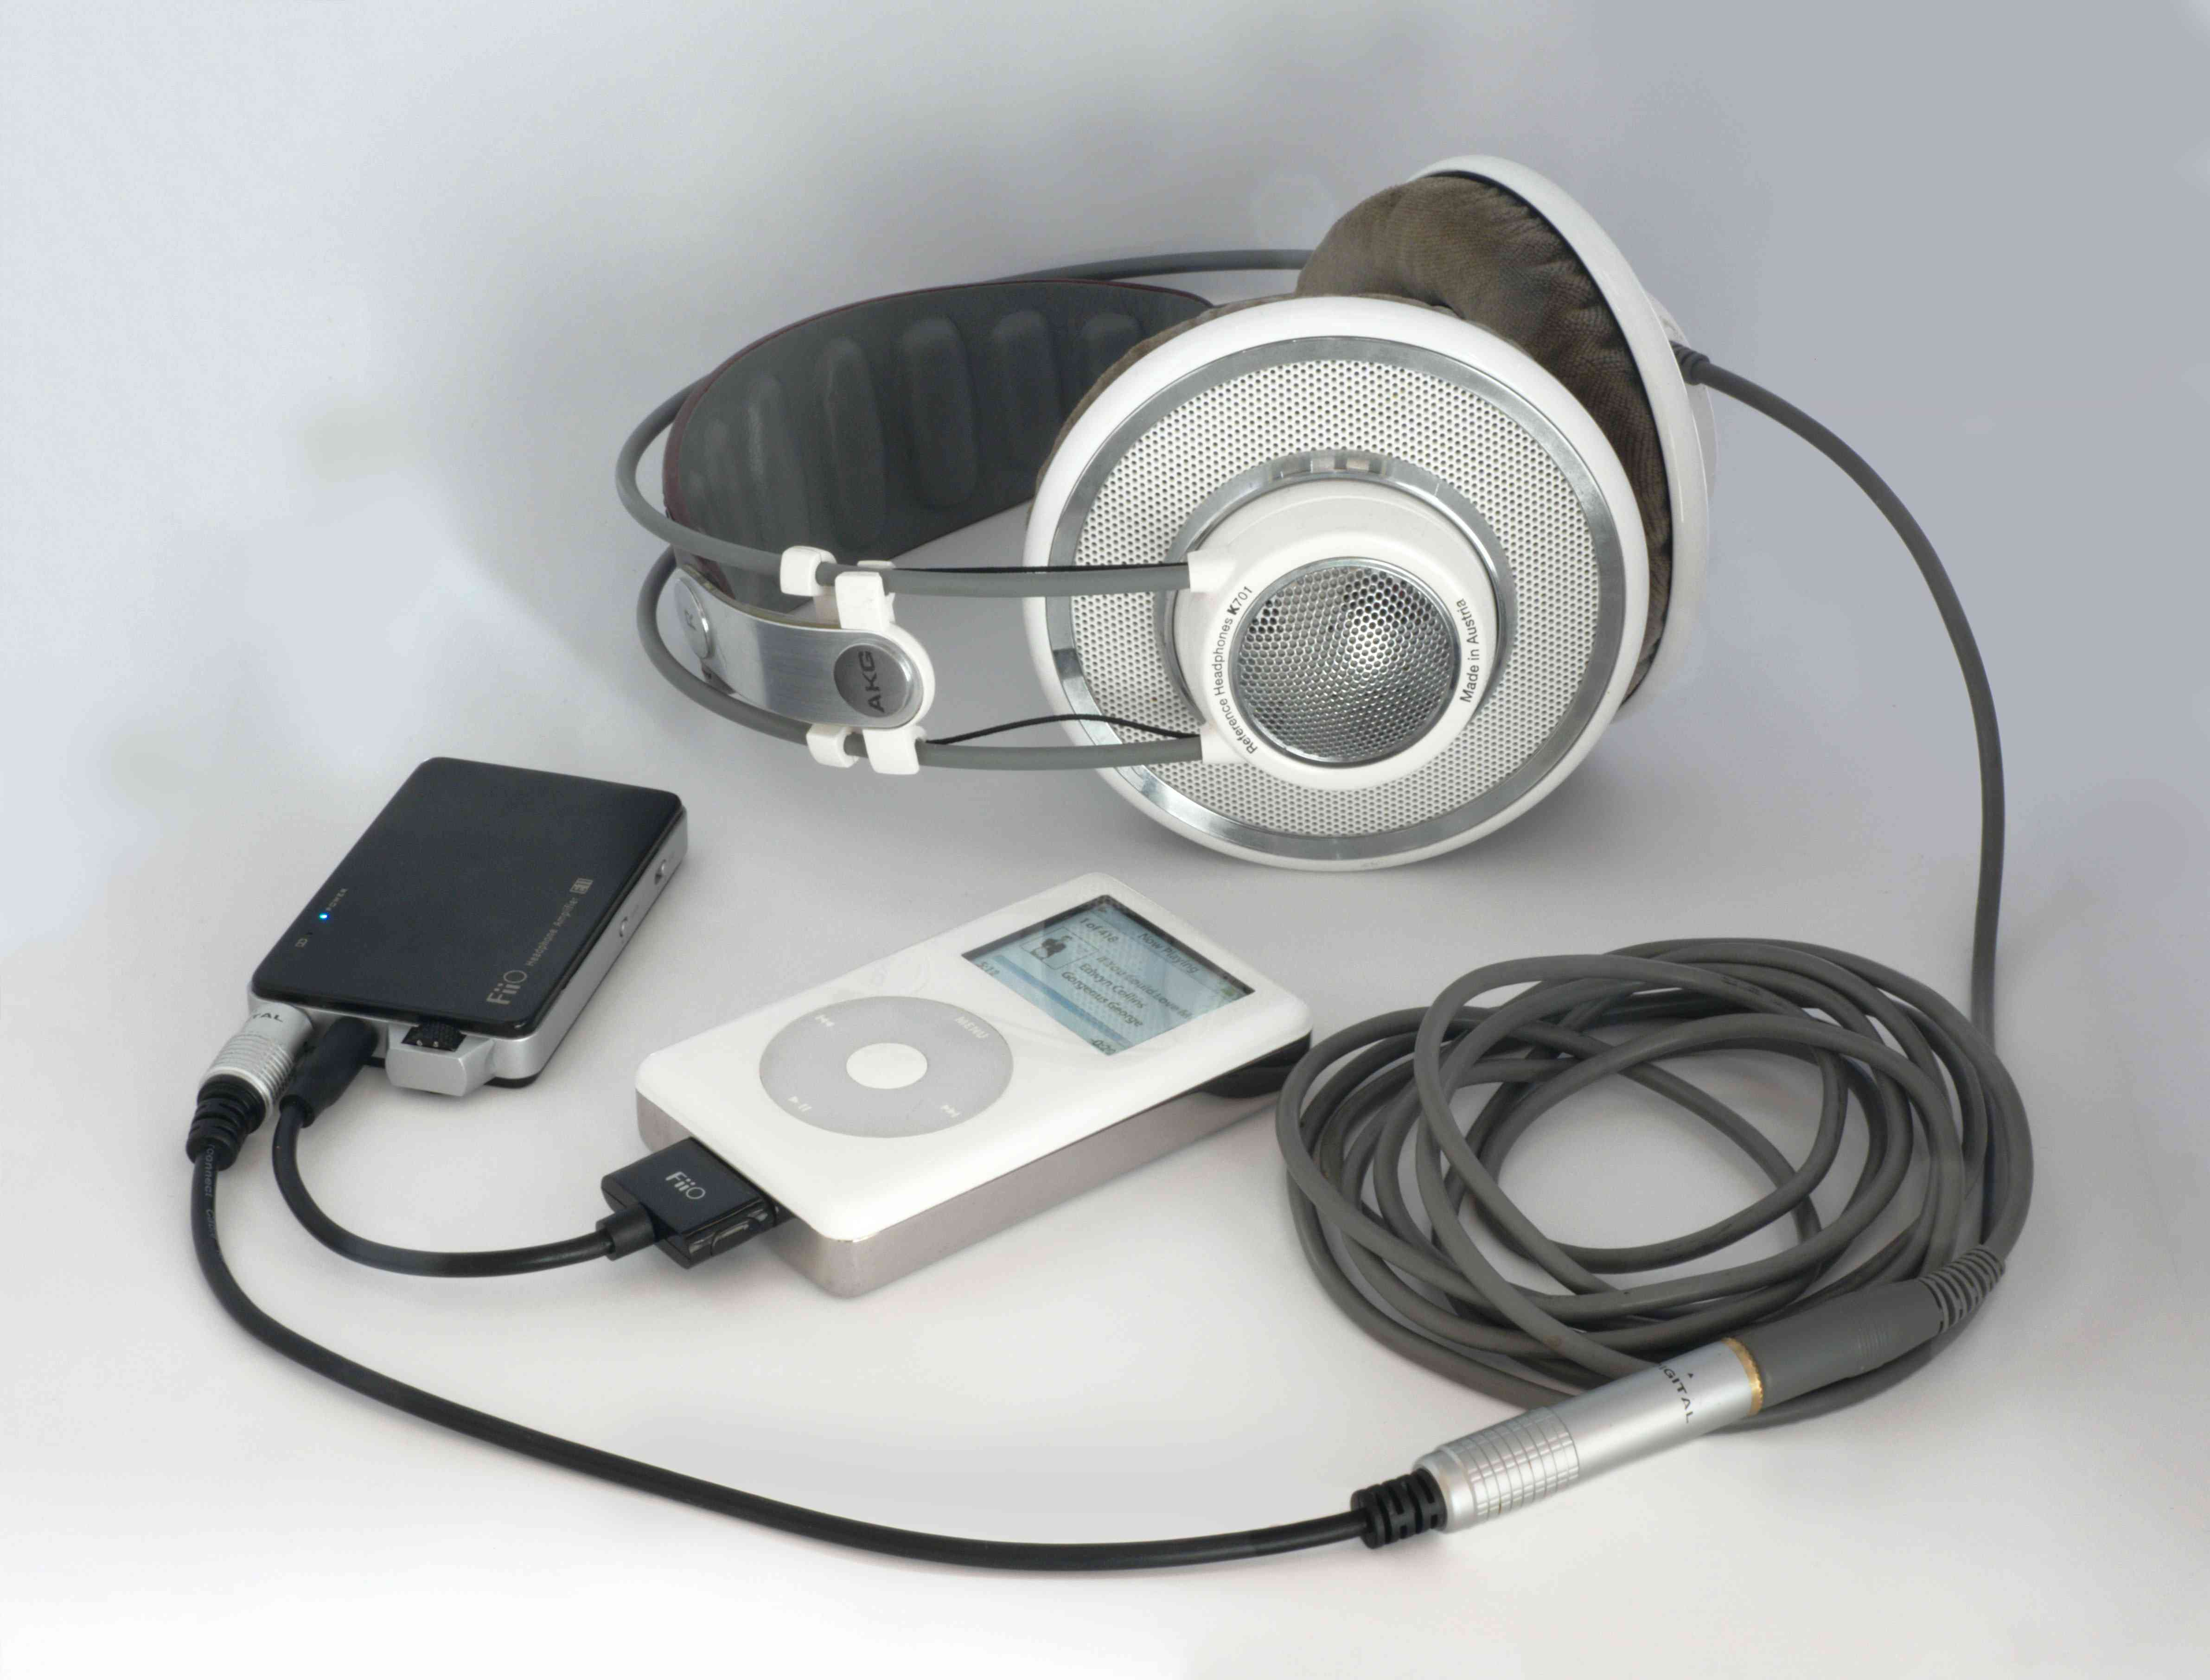 An original iPod classic with an adapter to be able to connect professional grade headphones.